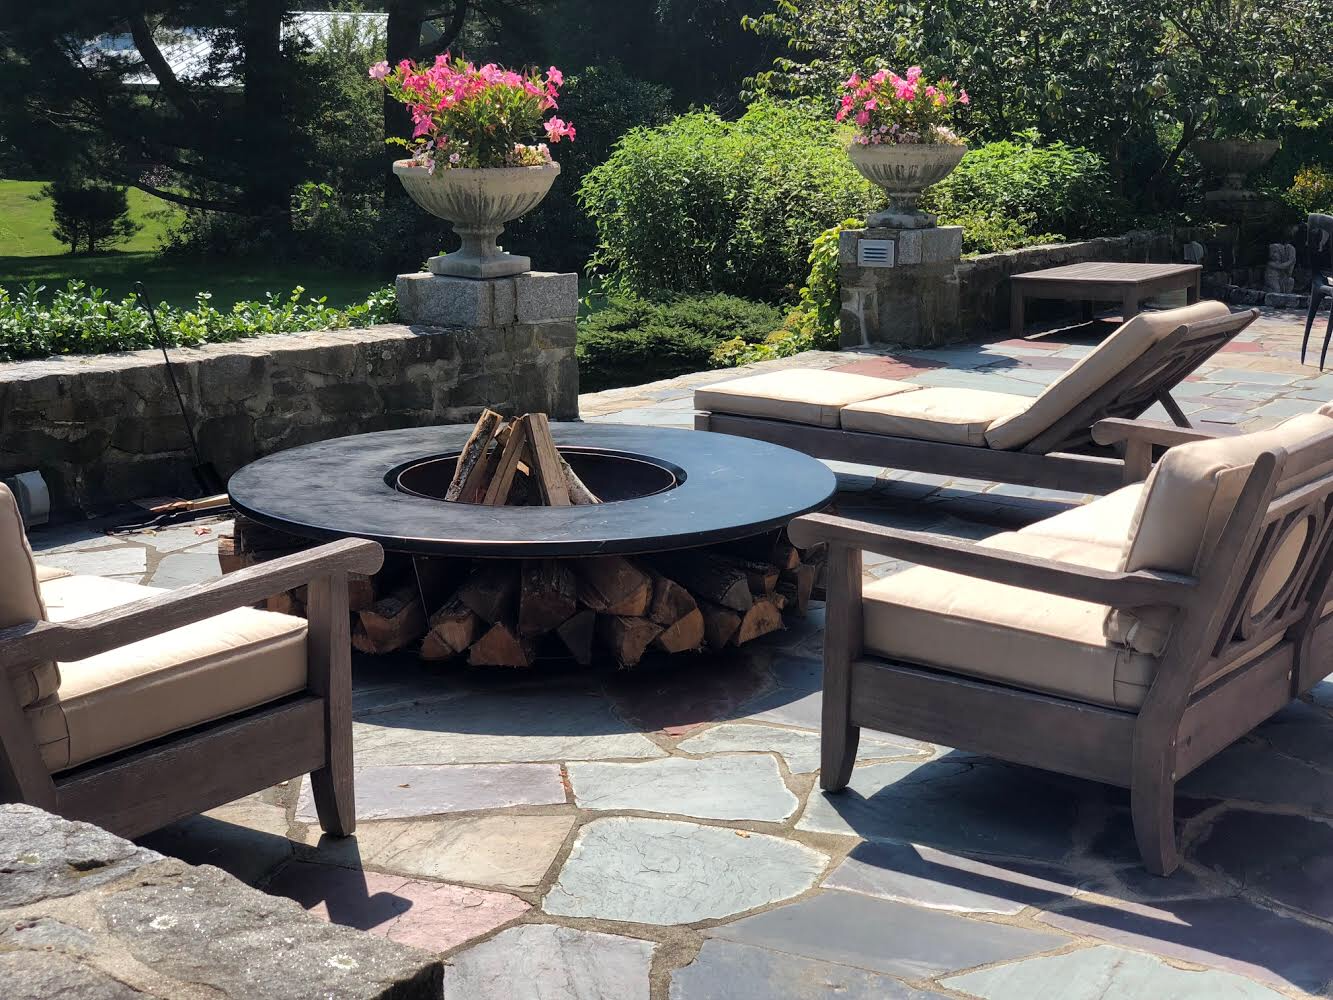 Steel Outdoor Fire-pit